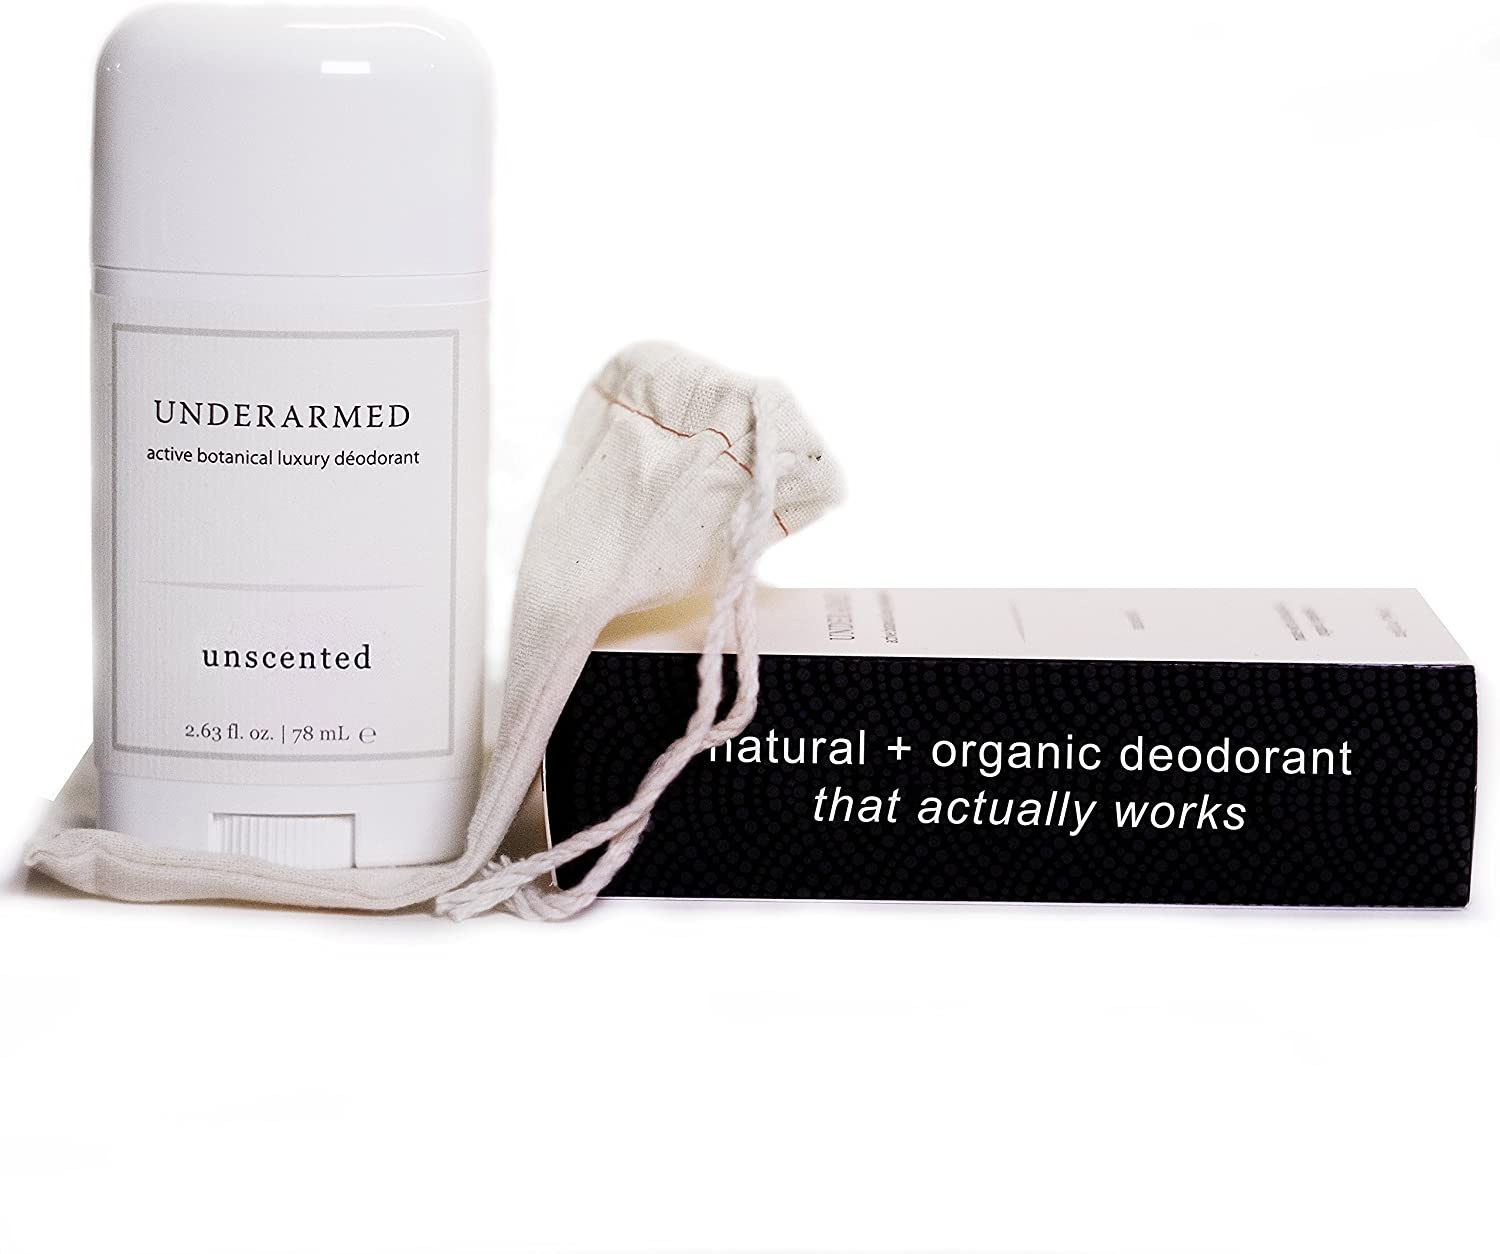 Natural Unscented Deodorant Stick (That Works) Aluminum-Free Underarmed for Women & Men - Stay Fresh All Day - Organic, Healthy, Safe, Non Toxic - Phthalate, Paraben, Gluten & Cruelty Free